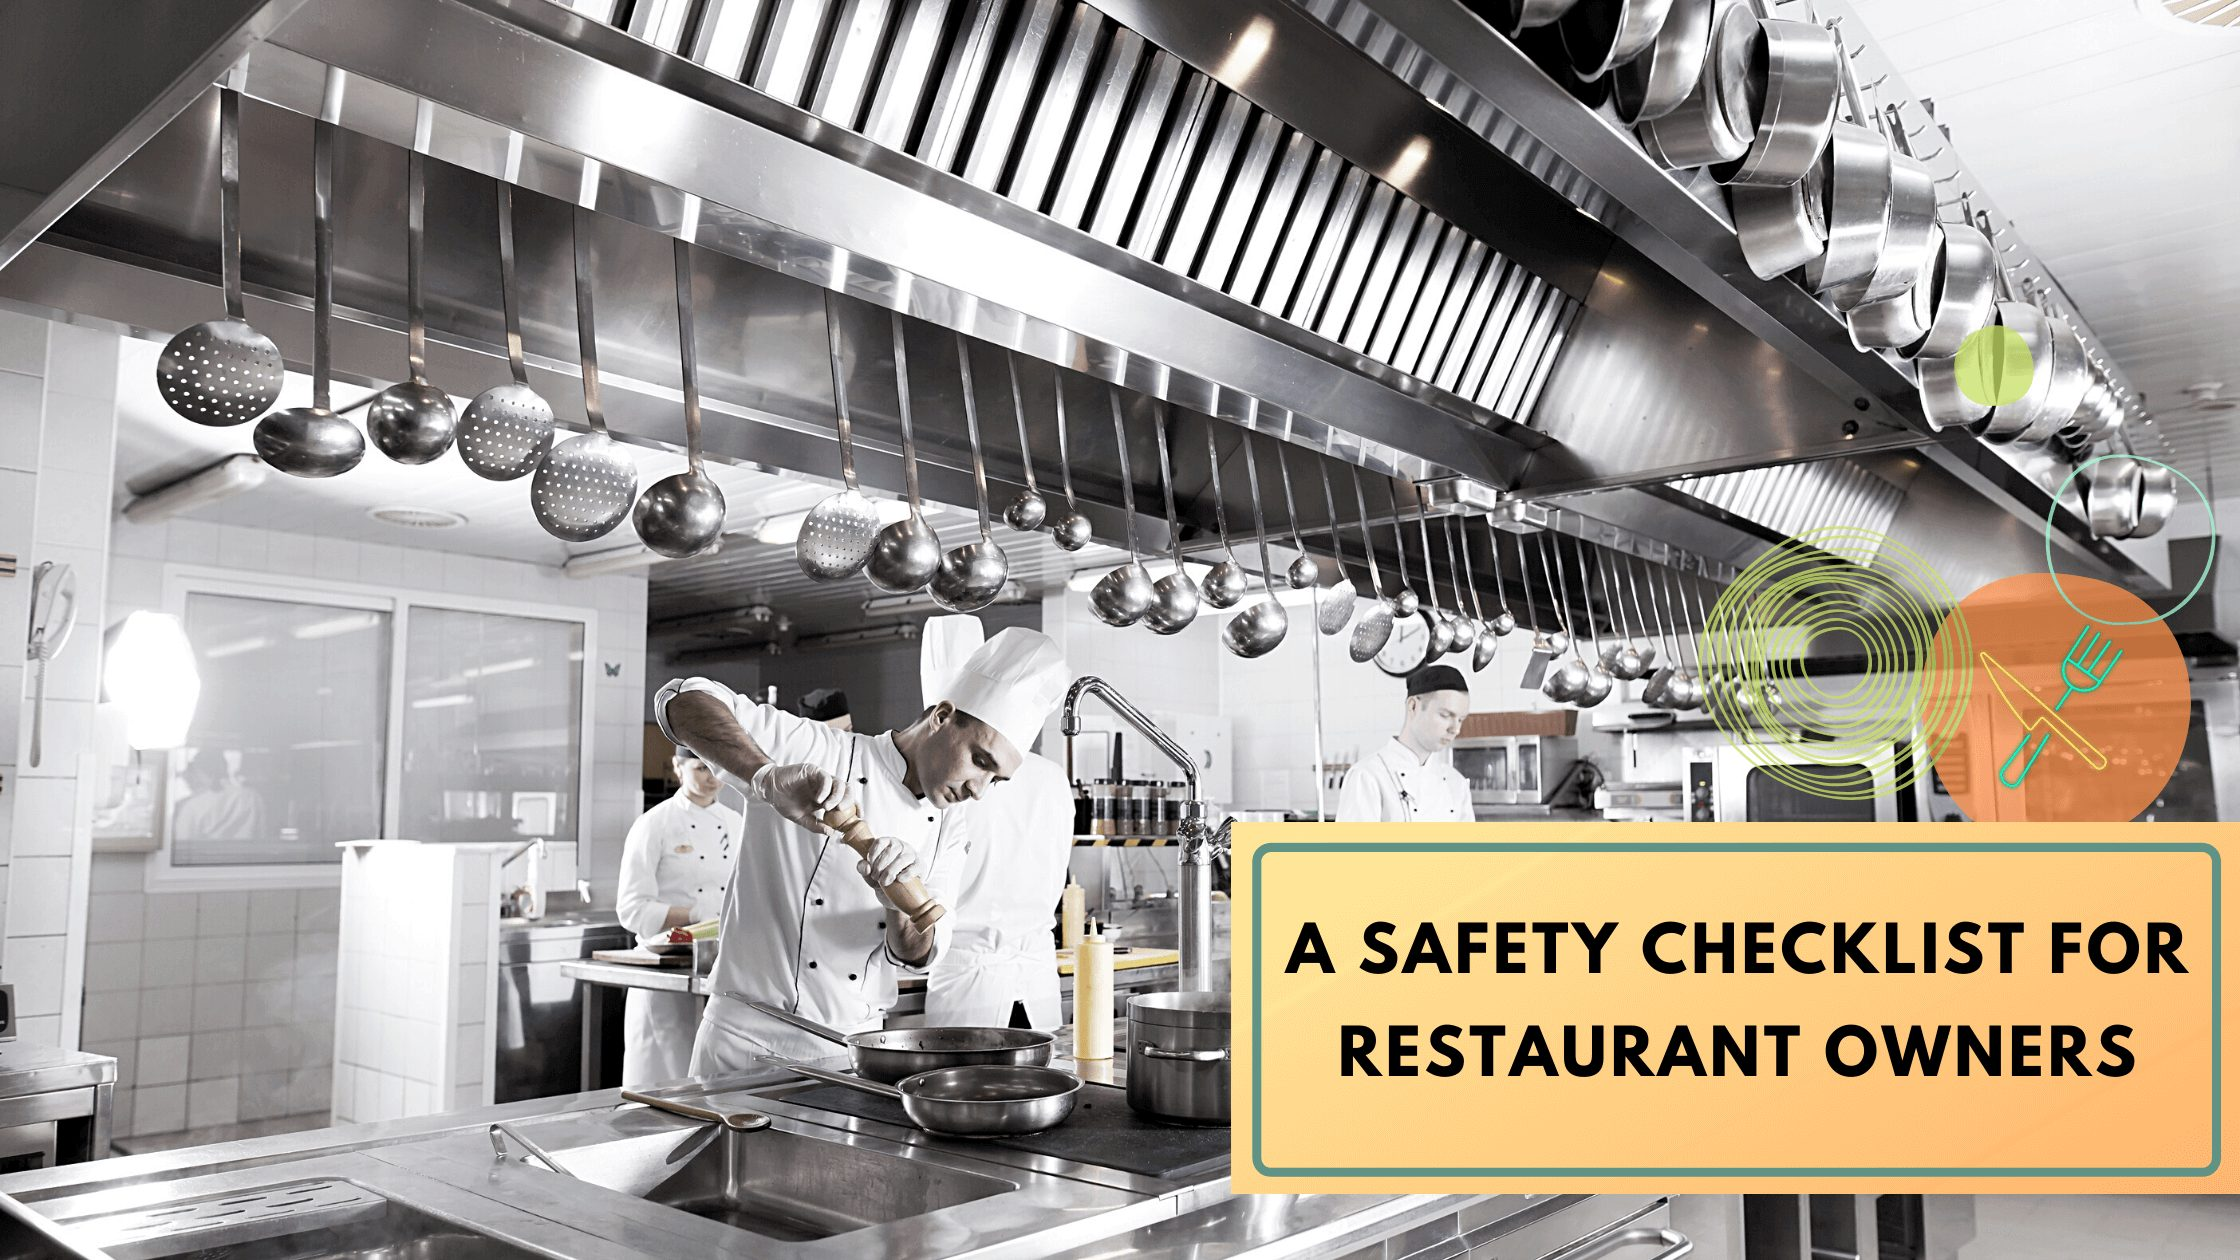 Restaurant kitchen equipment safety checklist